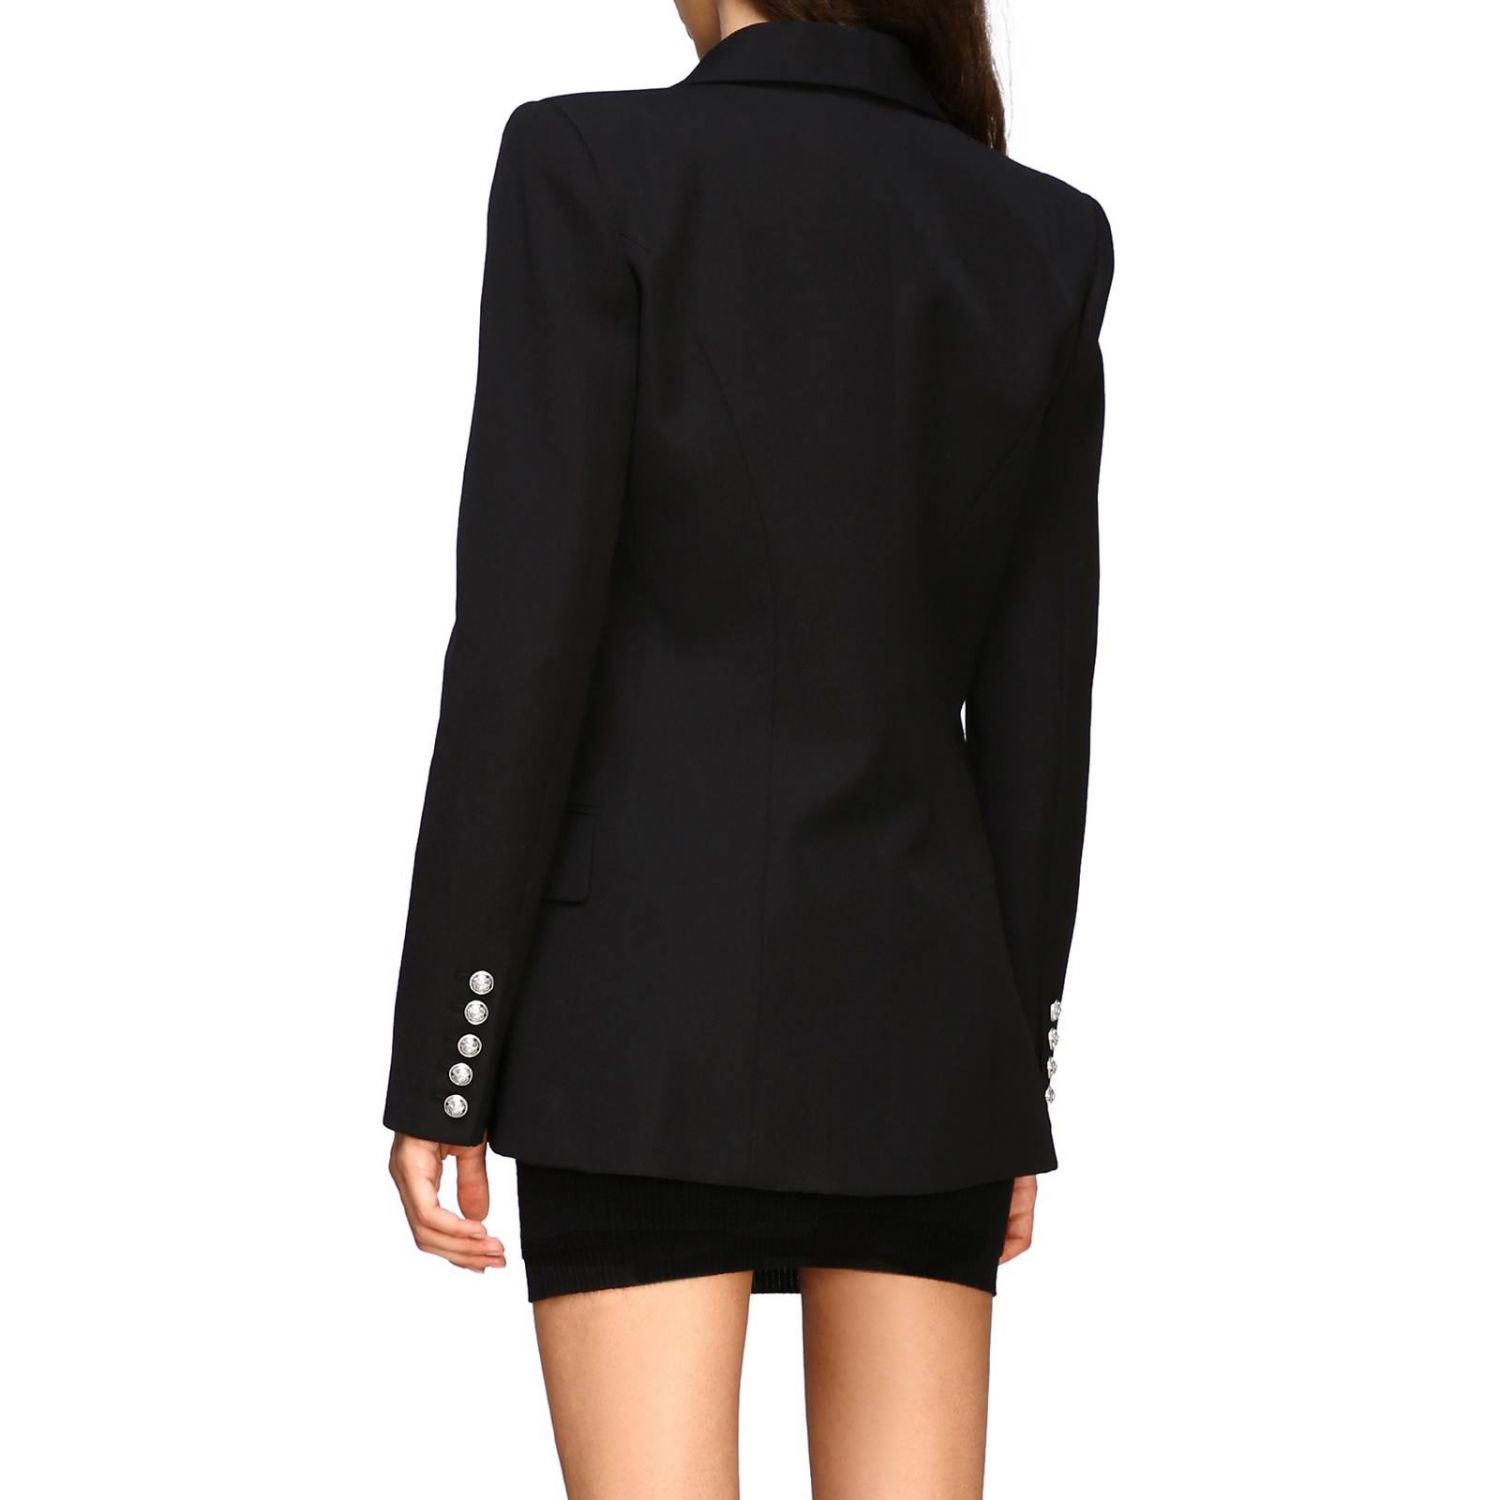 Balmain double-breasted blazer with jewel buttons black 3